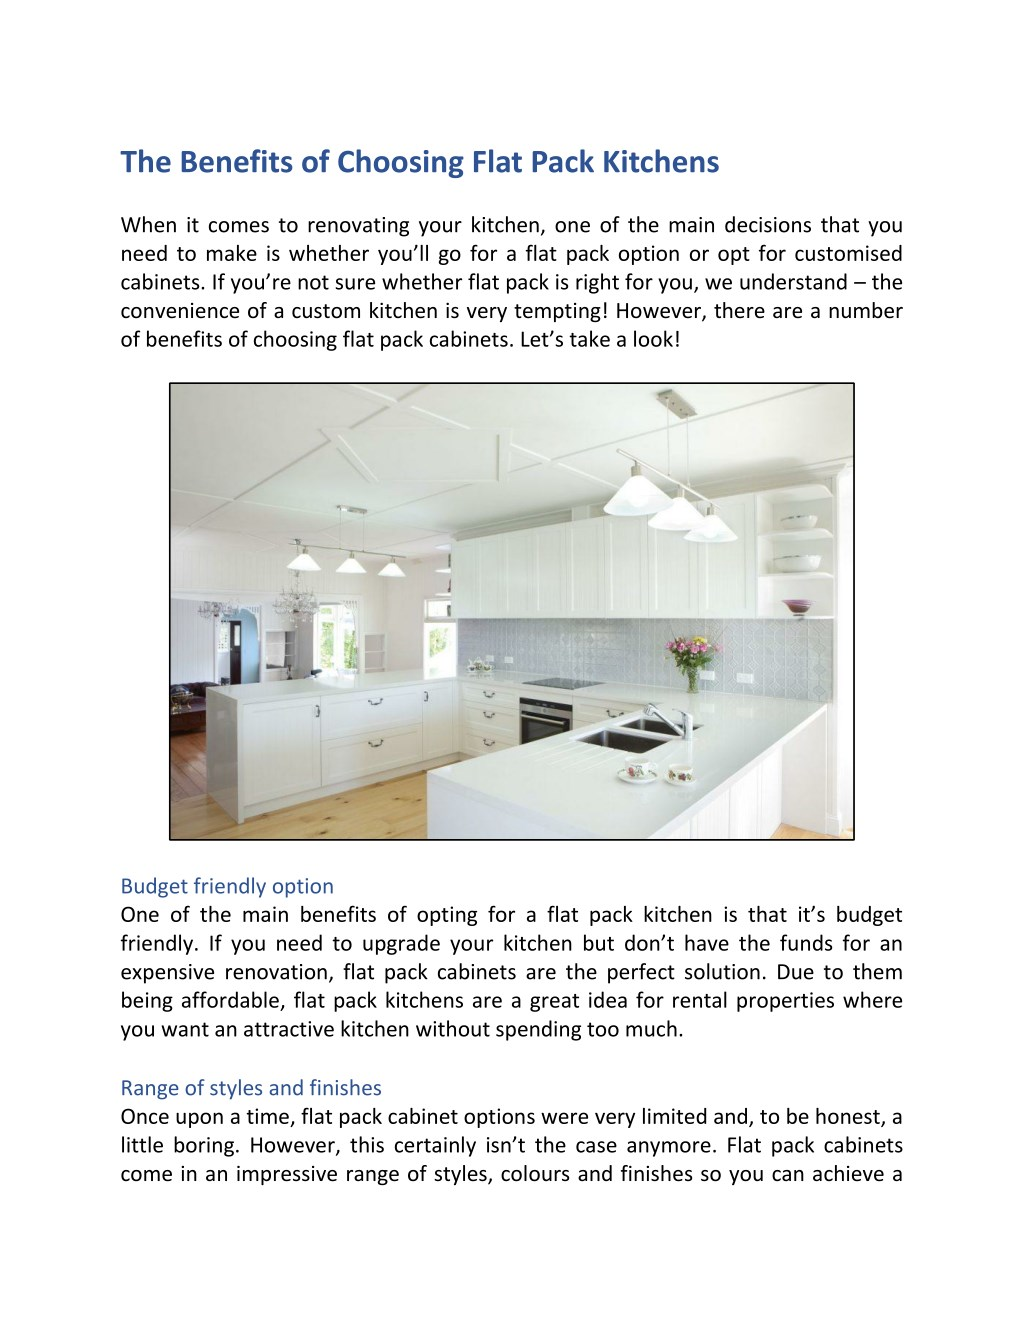 Flat Pack Kitchens >> Ppt The Benefits Of Choosing Flat Pack Kitchens Powerpoint